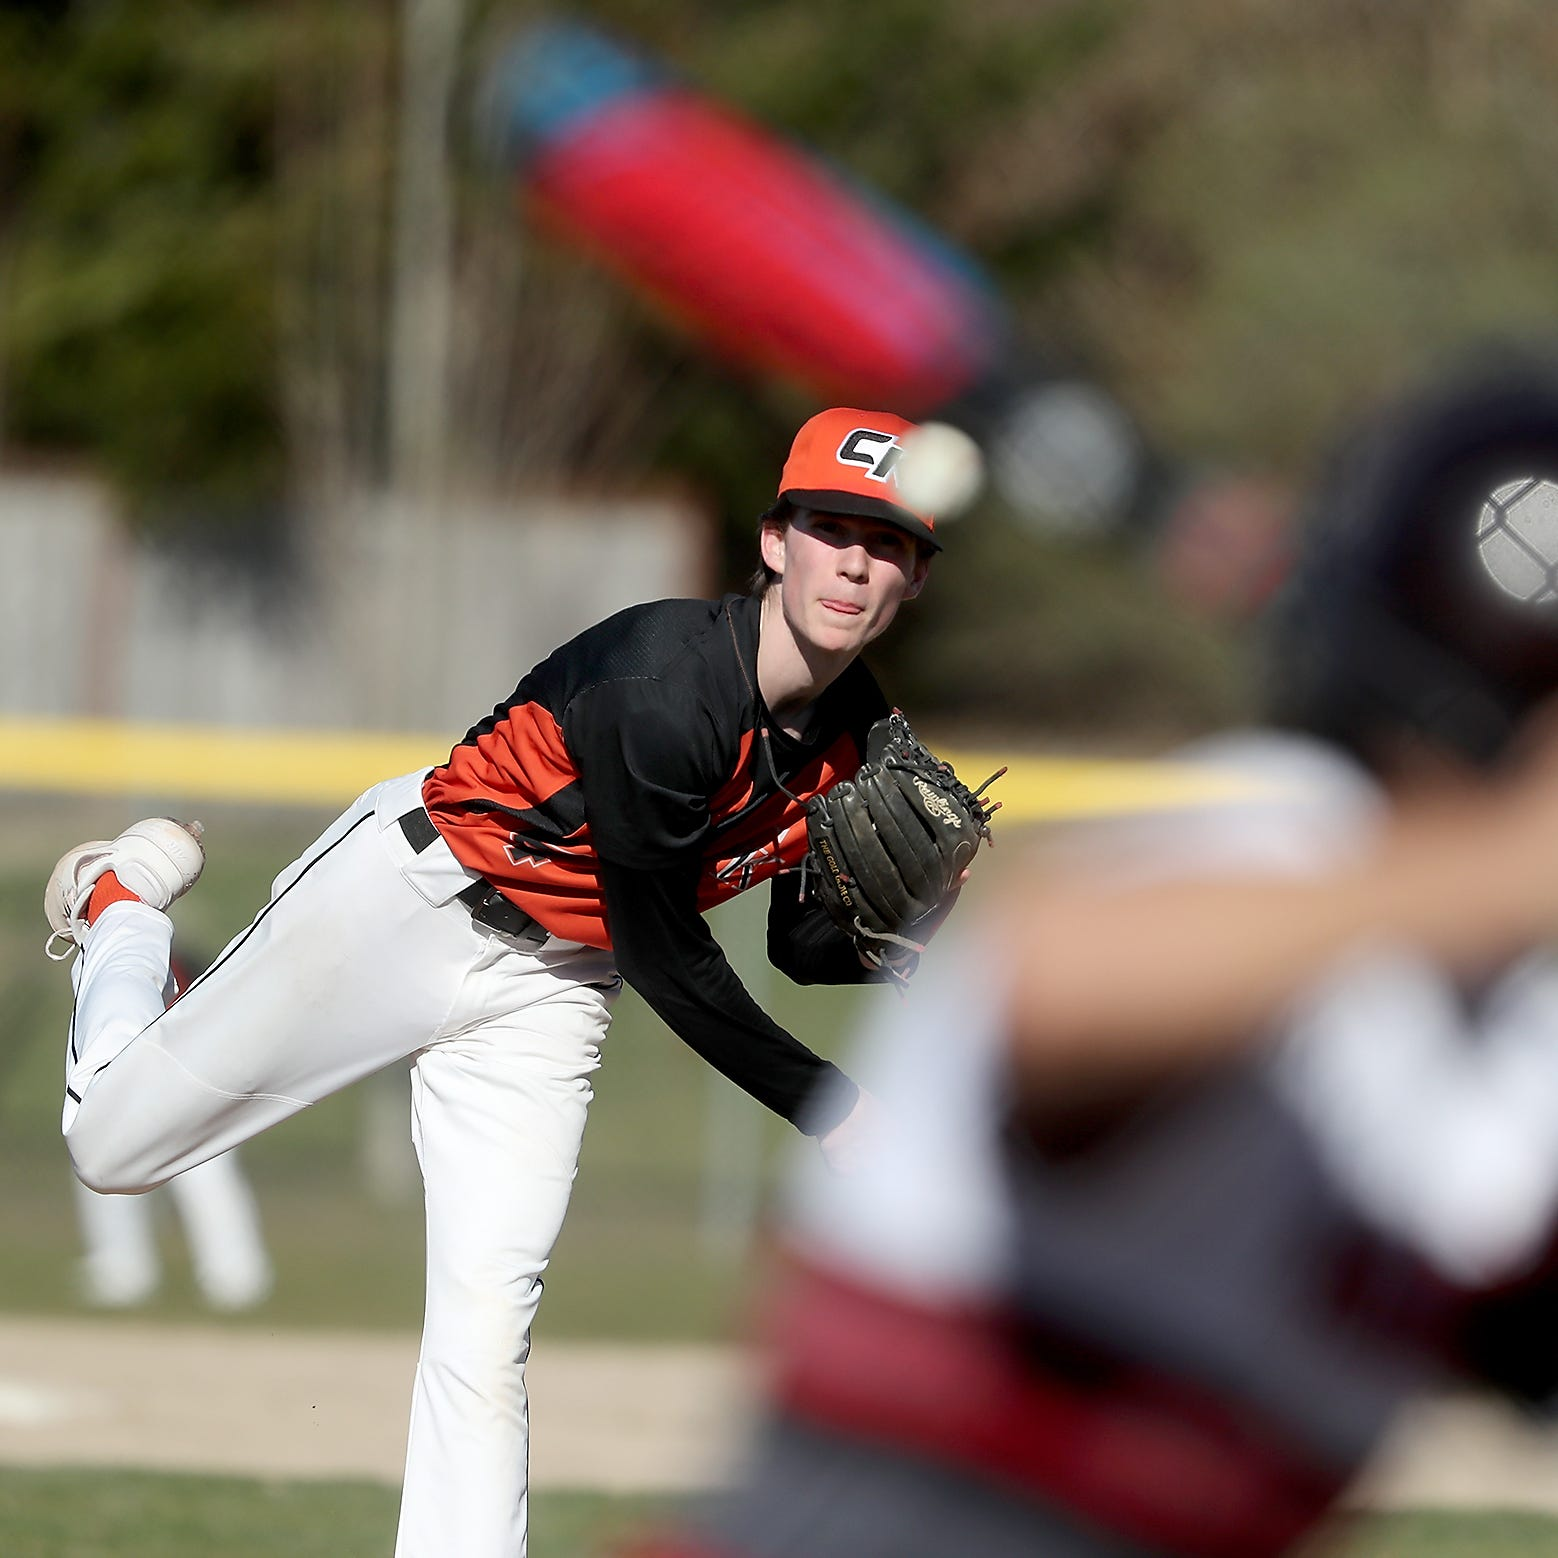 Central Kitsap baseball ready to unleash aces on new turf diamond